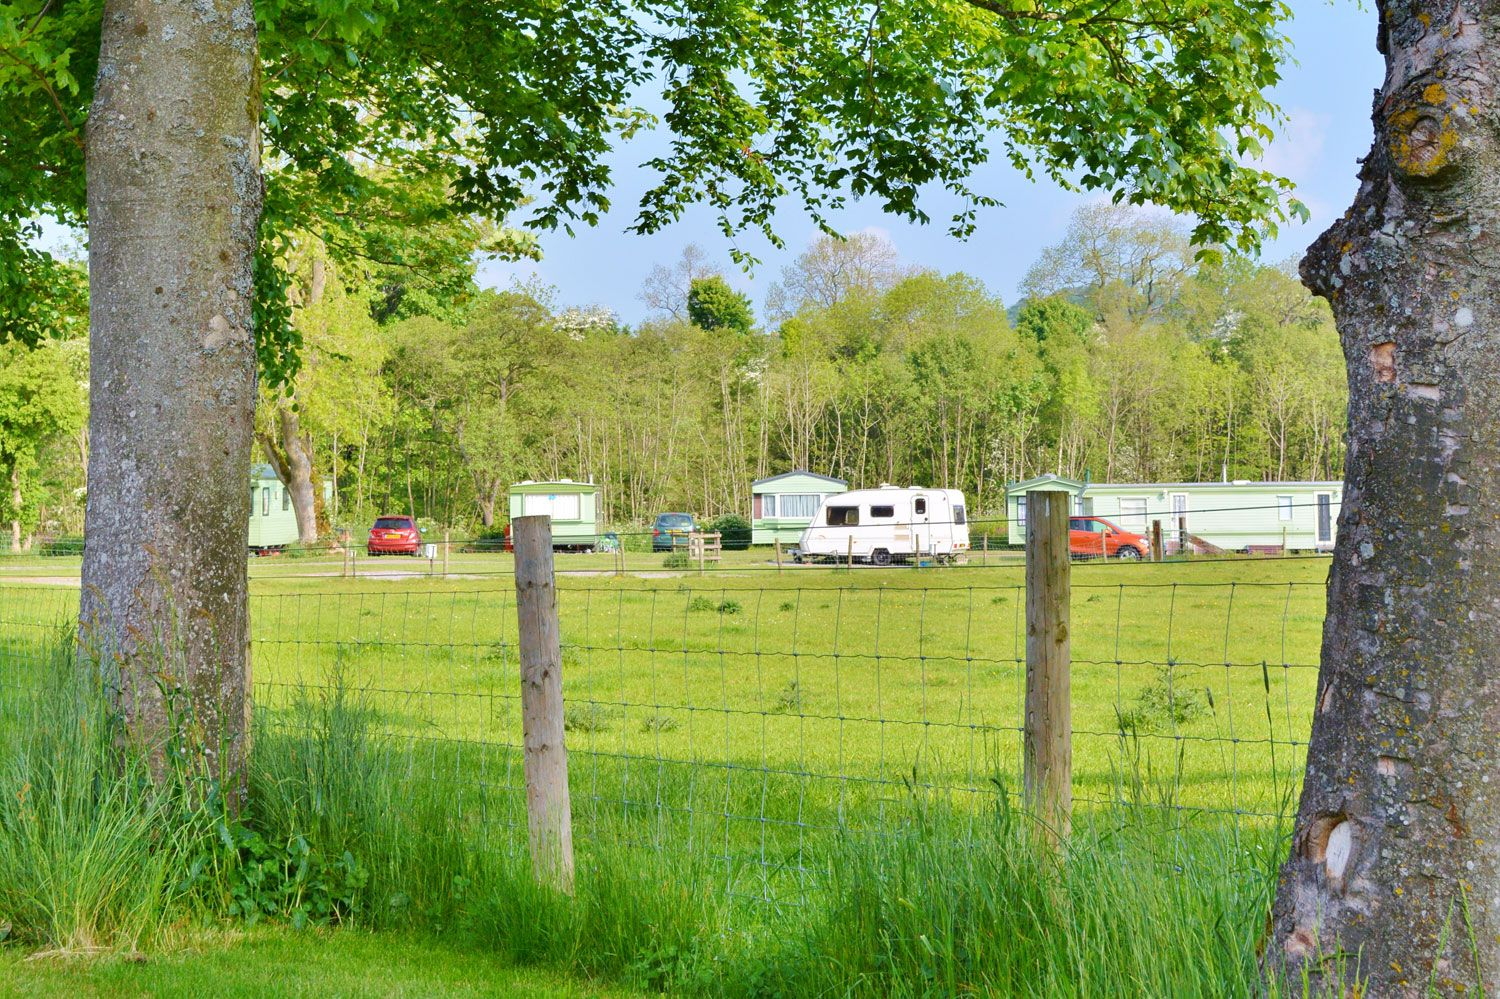 Tourers and Motorhomes